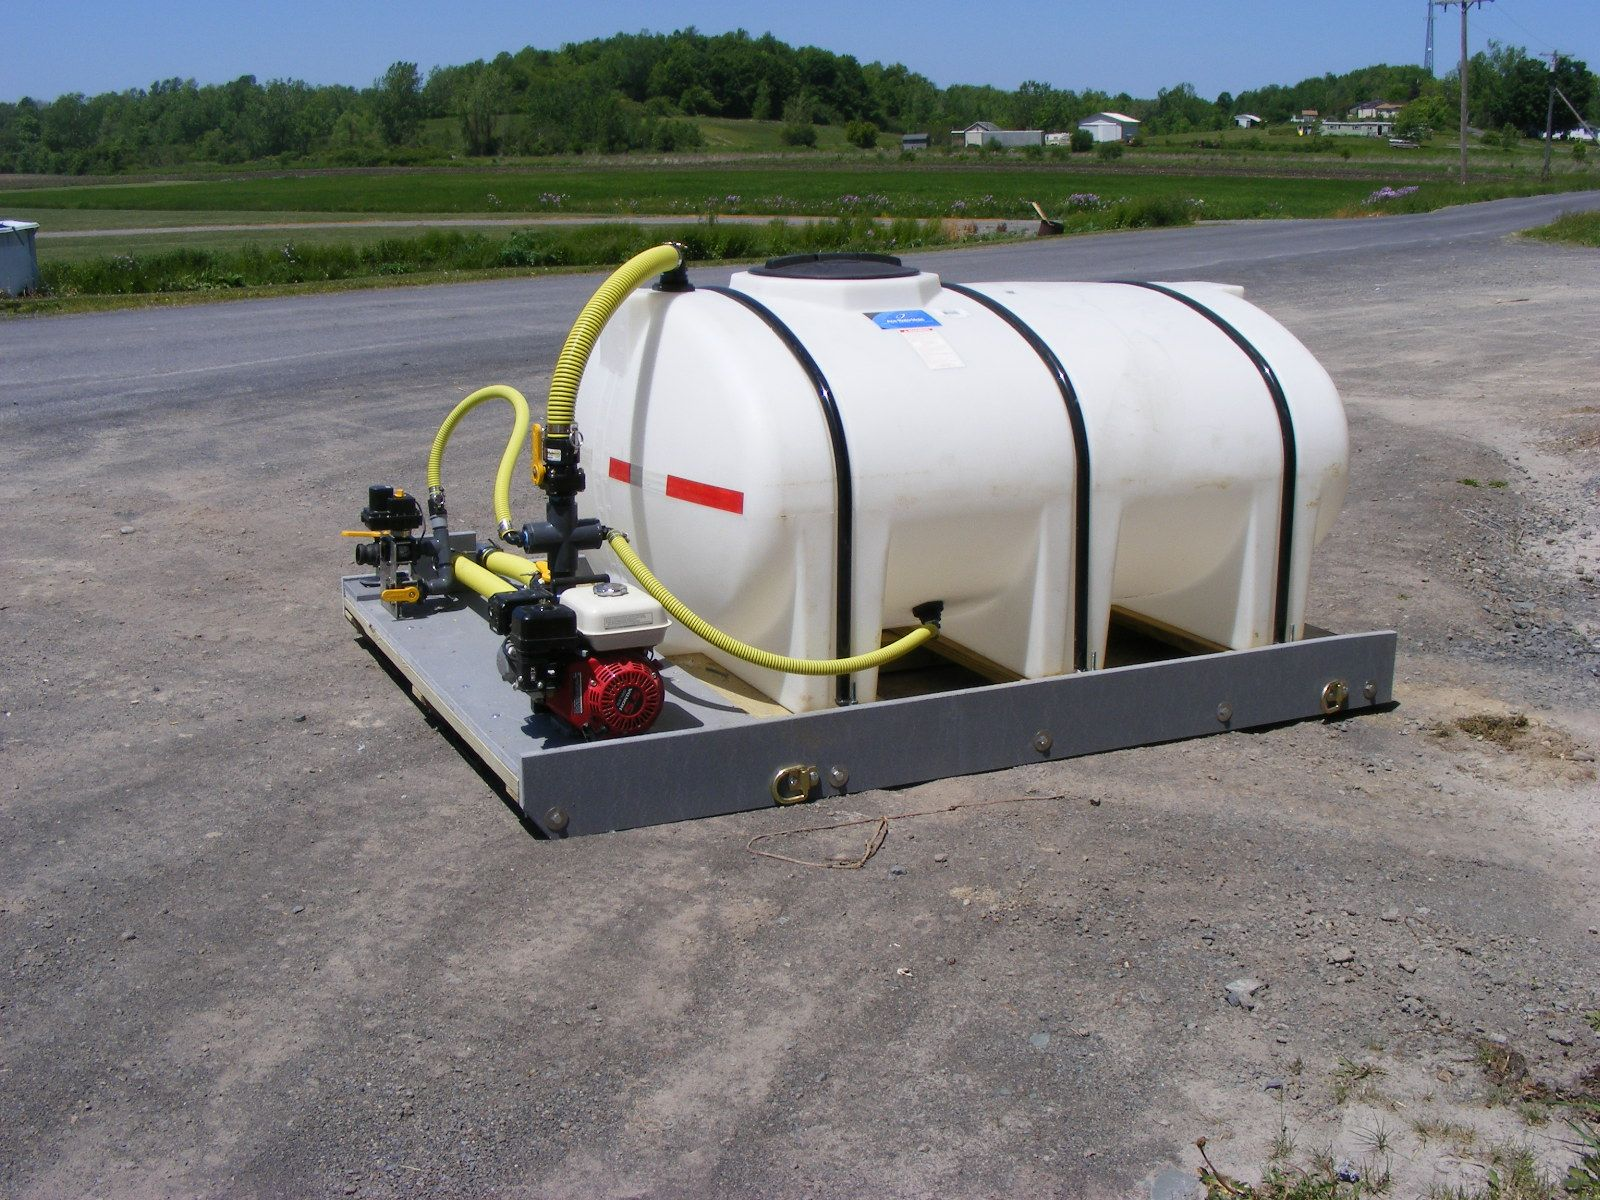 1035 Gallon Skid Mounted De-icing Sprayer Includes